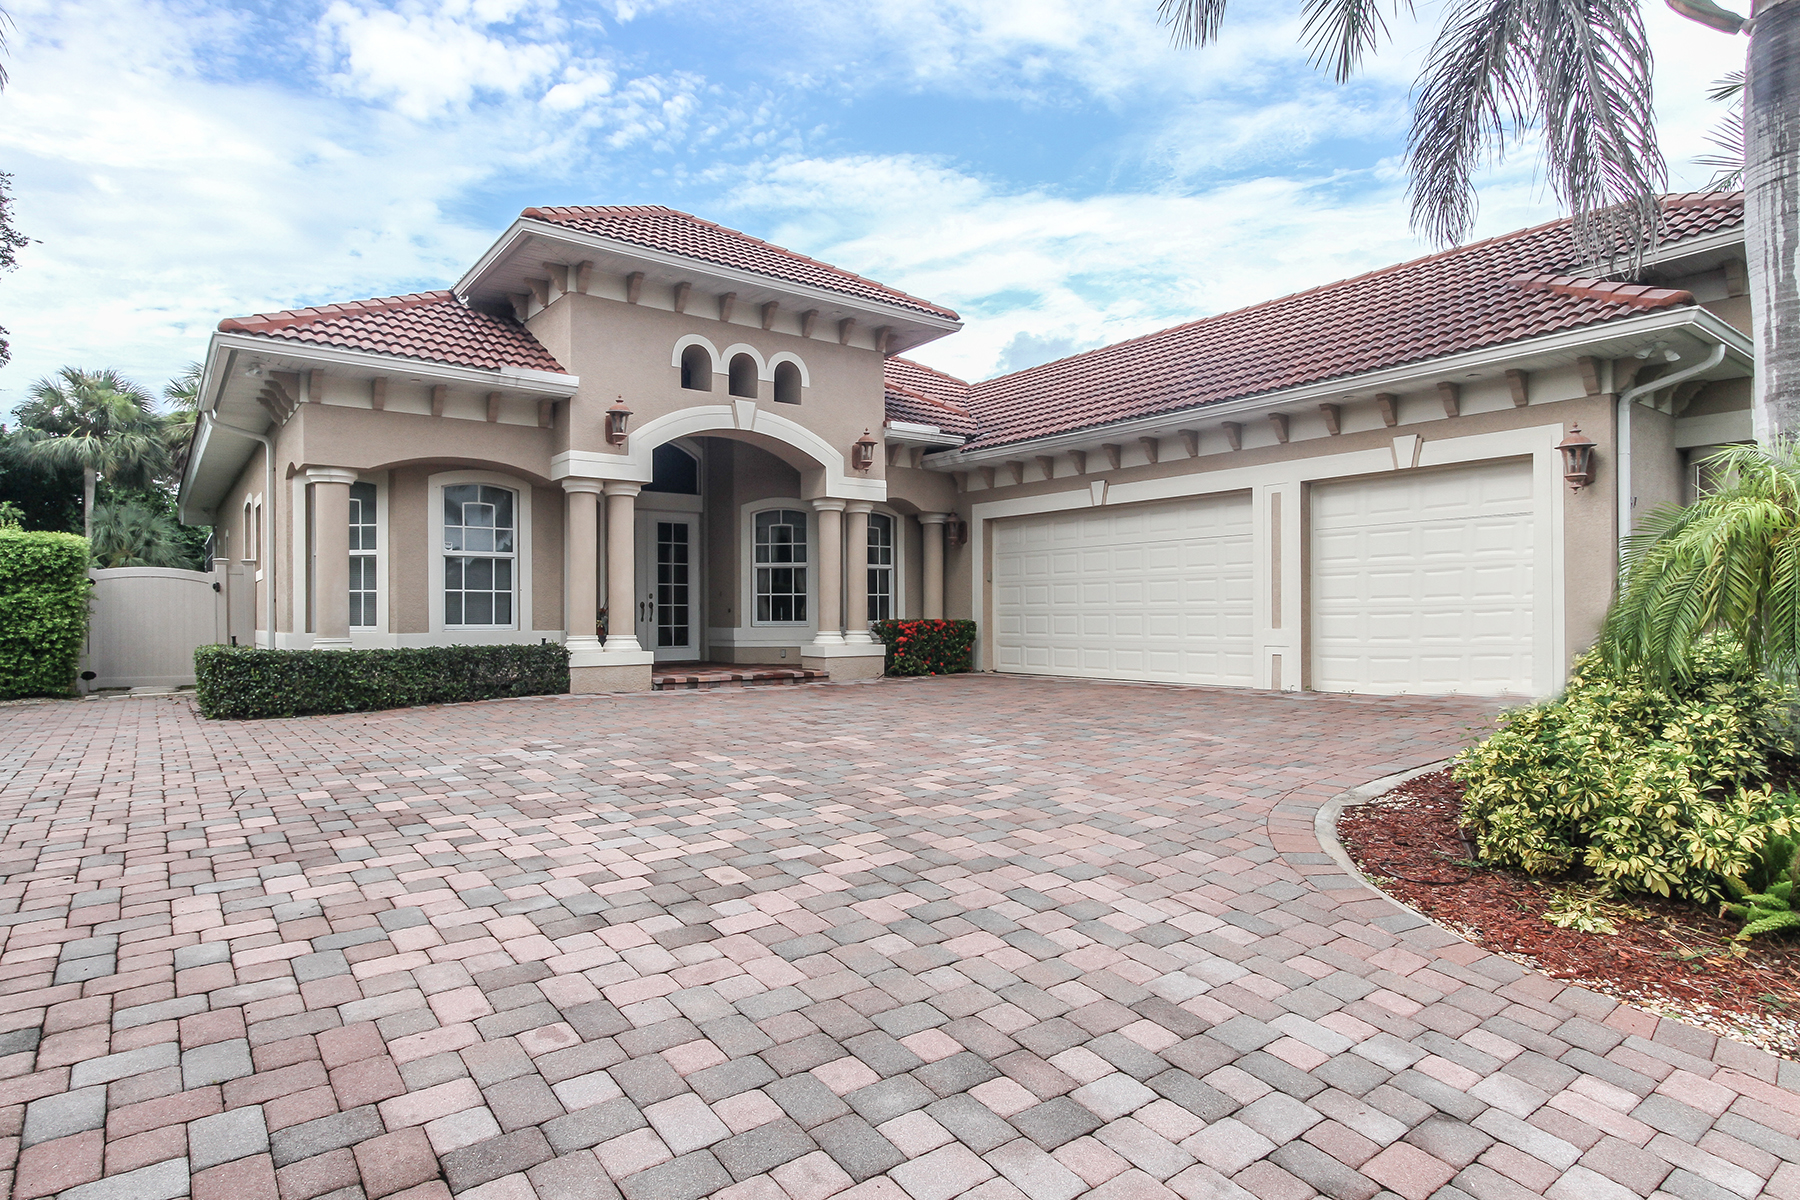 Single Family Home for Rent at MARCO ISLAND - CAXAMBAS ESTATES 1767 Watson Rd, Marco Island, Florida 34145 United States